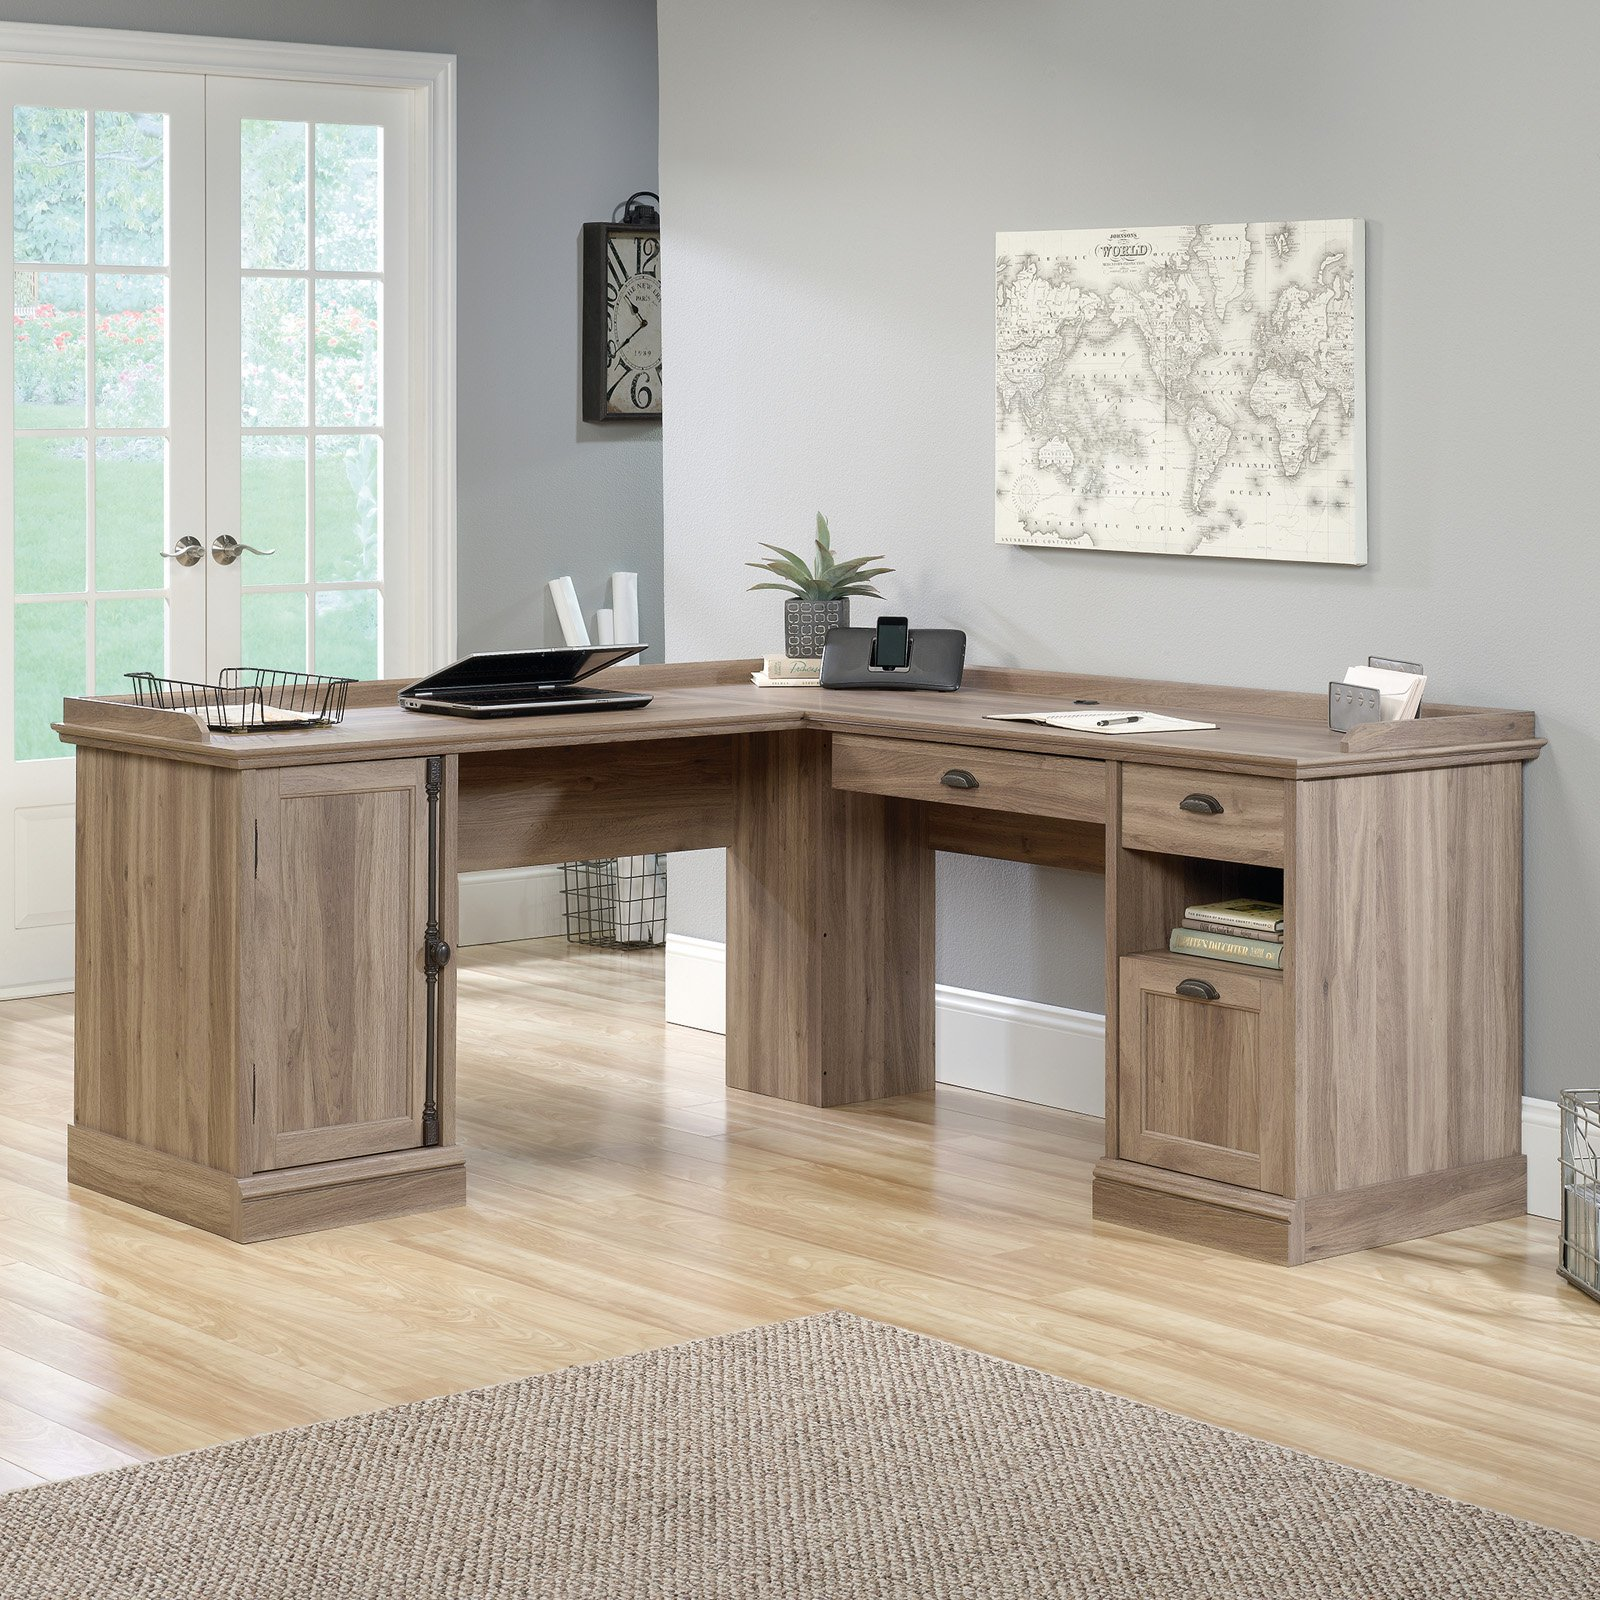 Sauder Barrister Lane L-Shaped Desk by Sauder